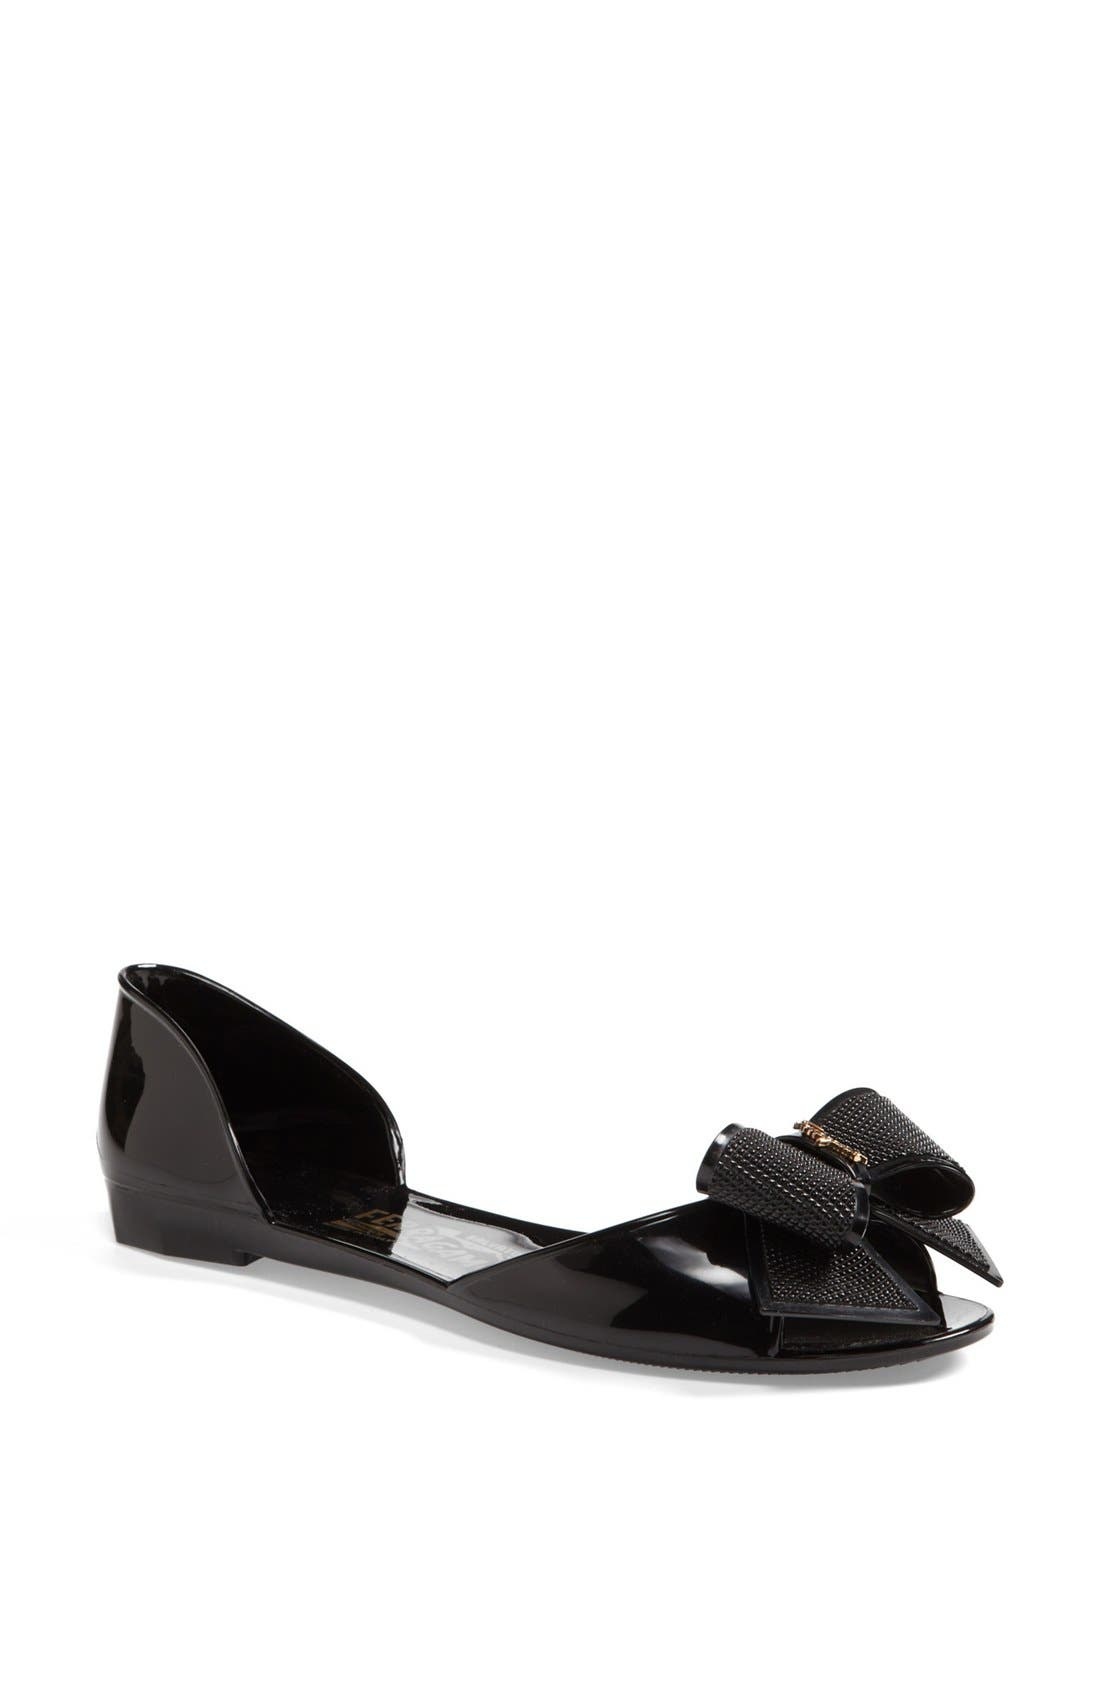 Alternate Image 1 Selected - Salvatore Ferragamo 'Barbados' Flat Sandal